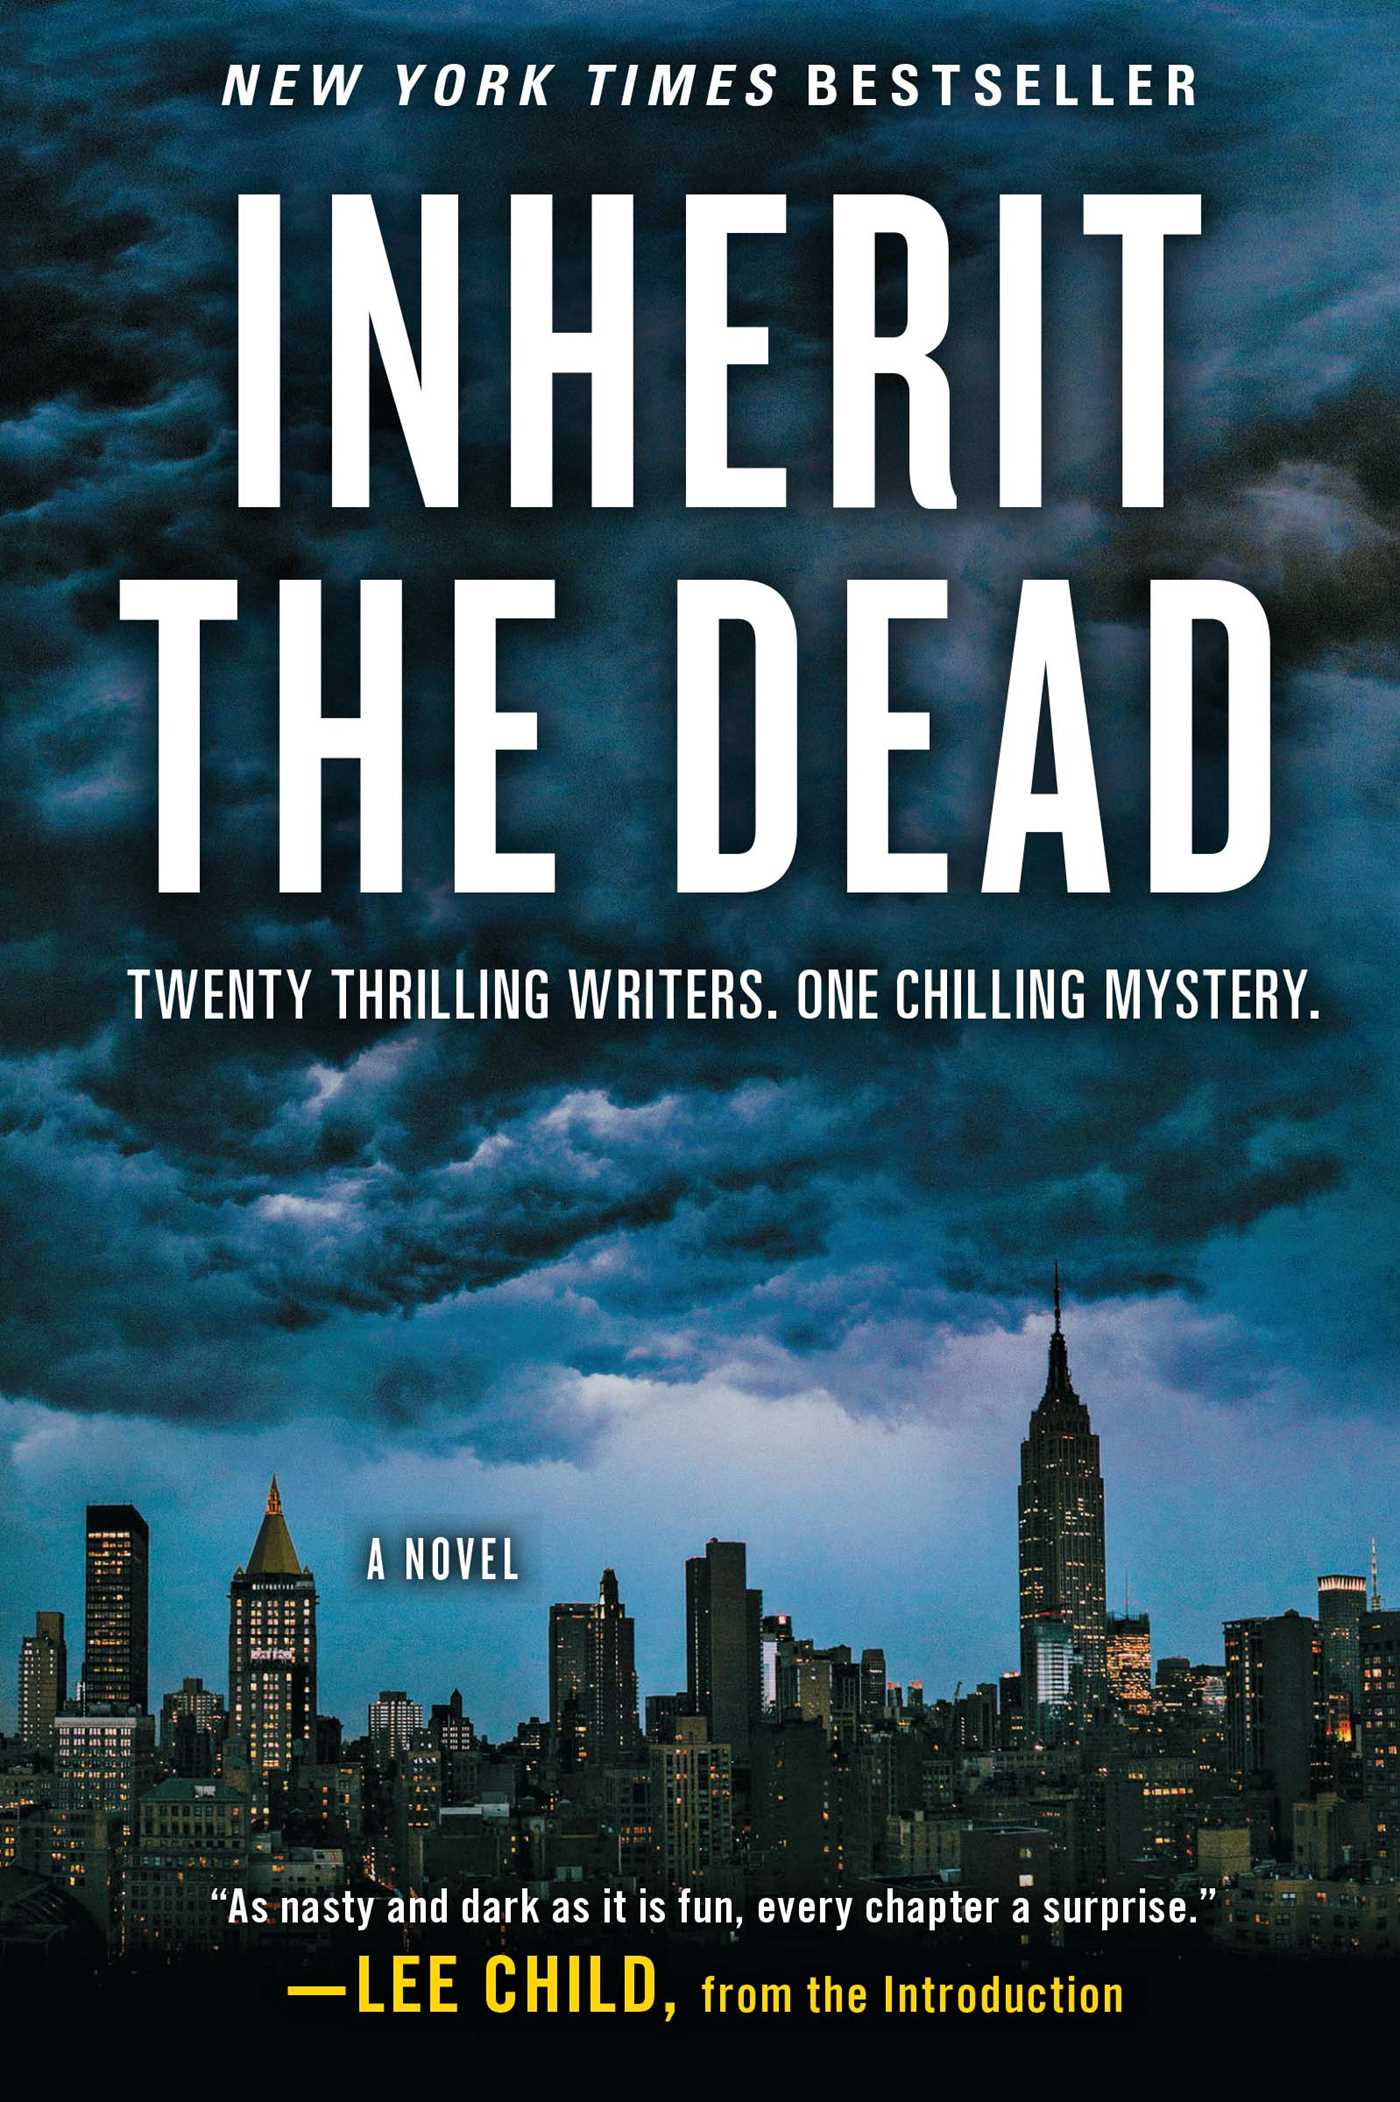 Inherit the dead 9781451684780 hr